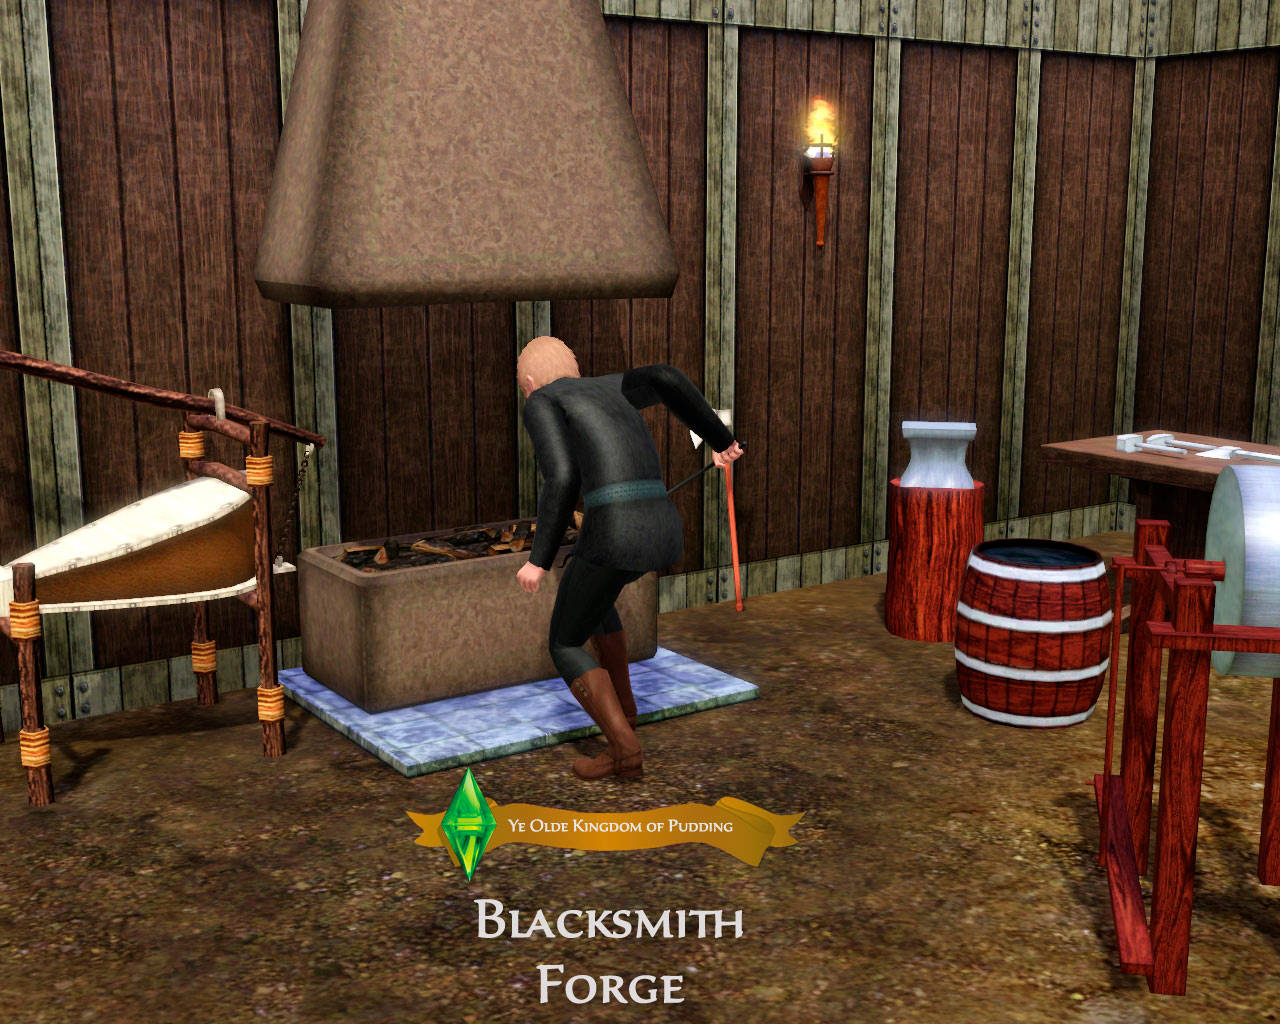 Mod The Sims - Medieval Blacksmith - Forge - Ye Olde Kingdom of Pudding